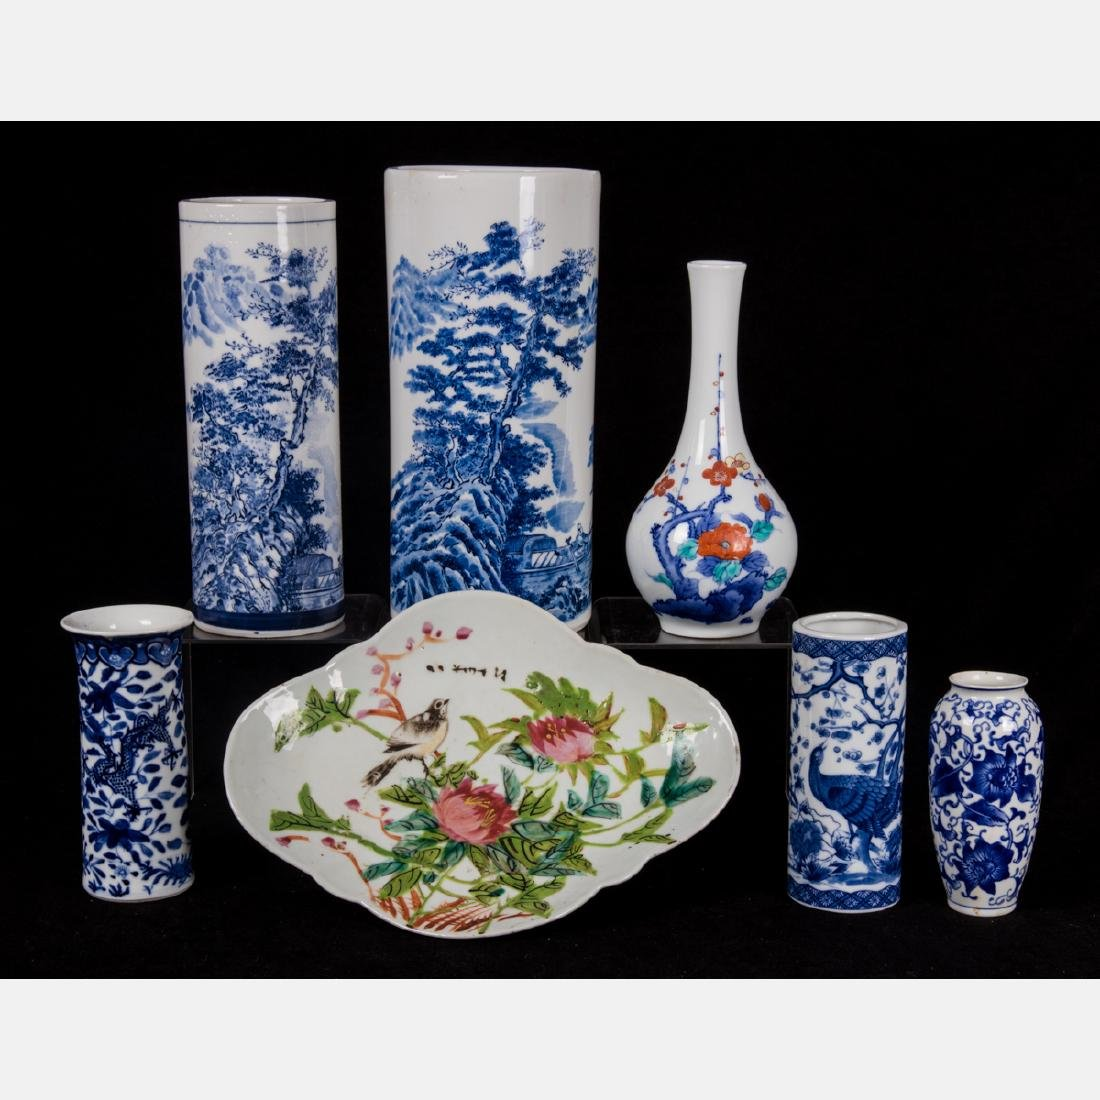 A Group of Six Asian Porcelain Vases, 20th Century,